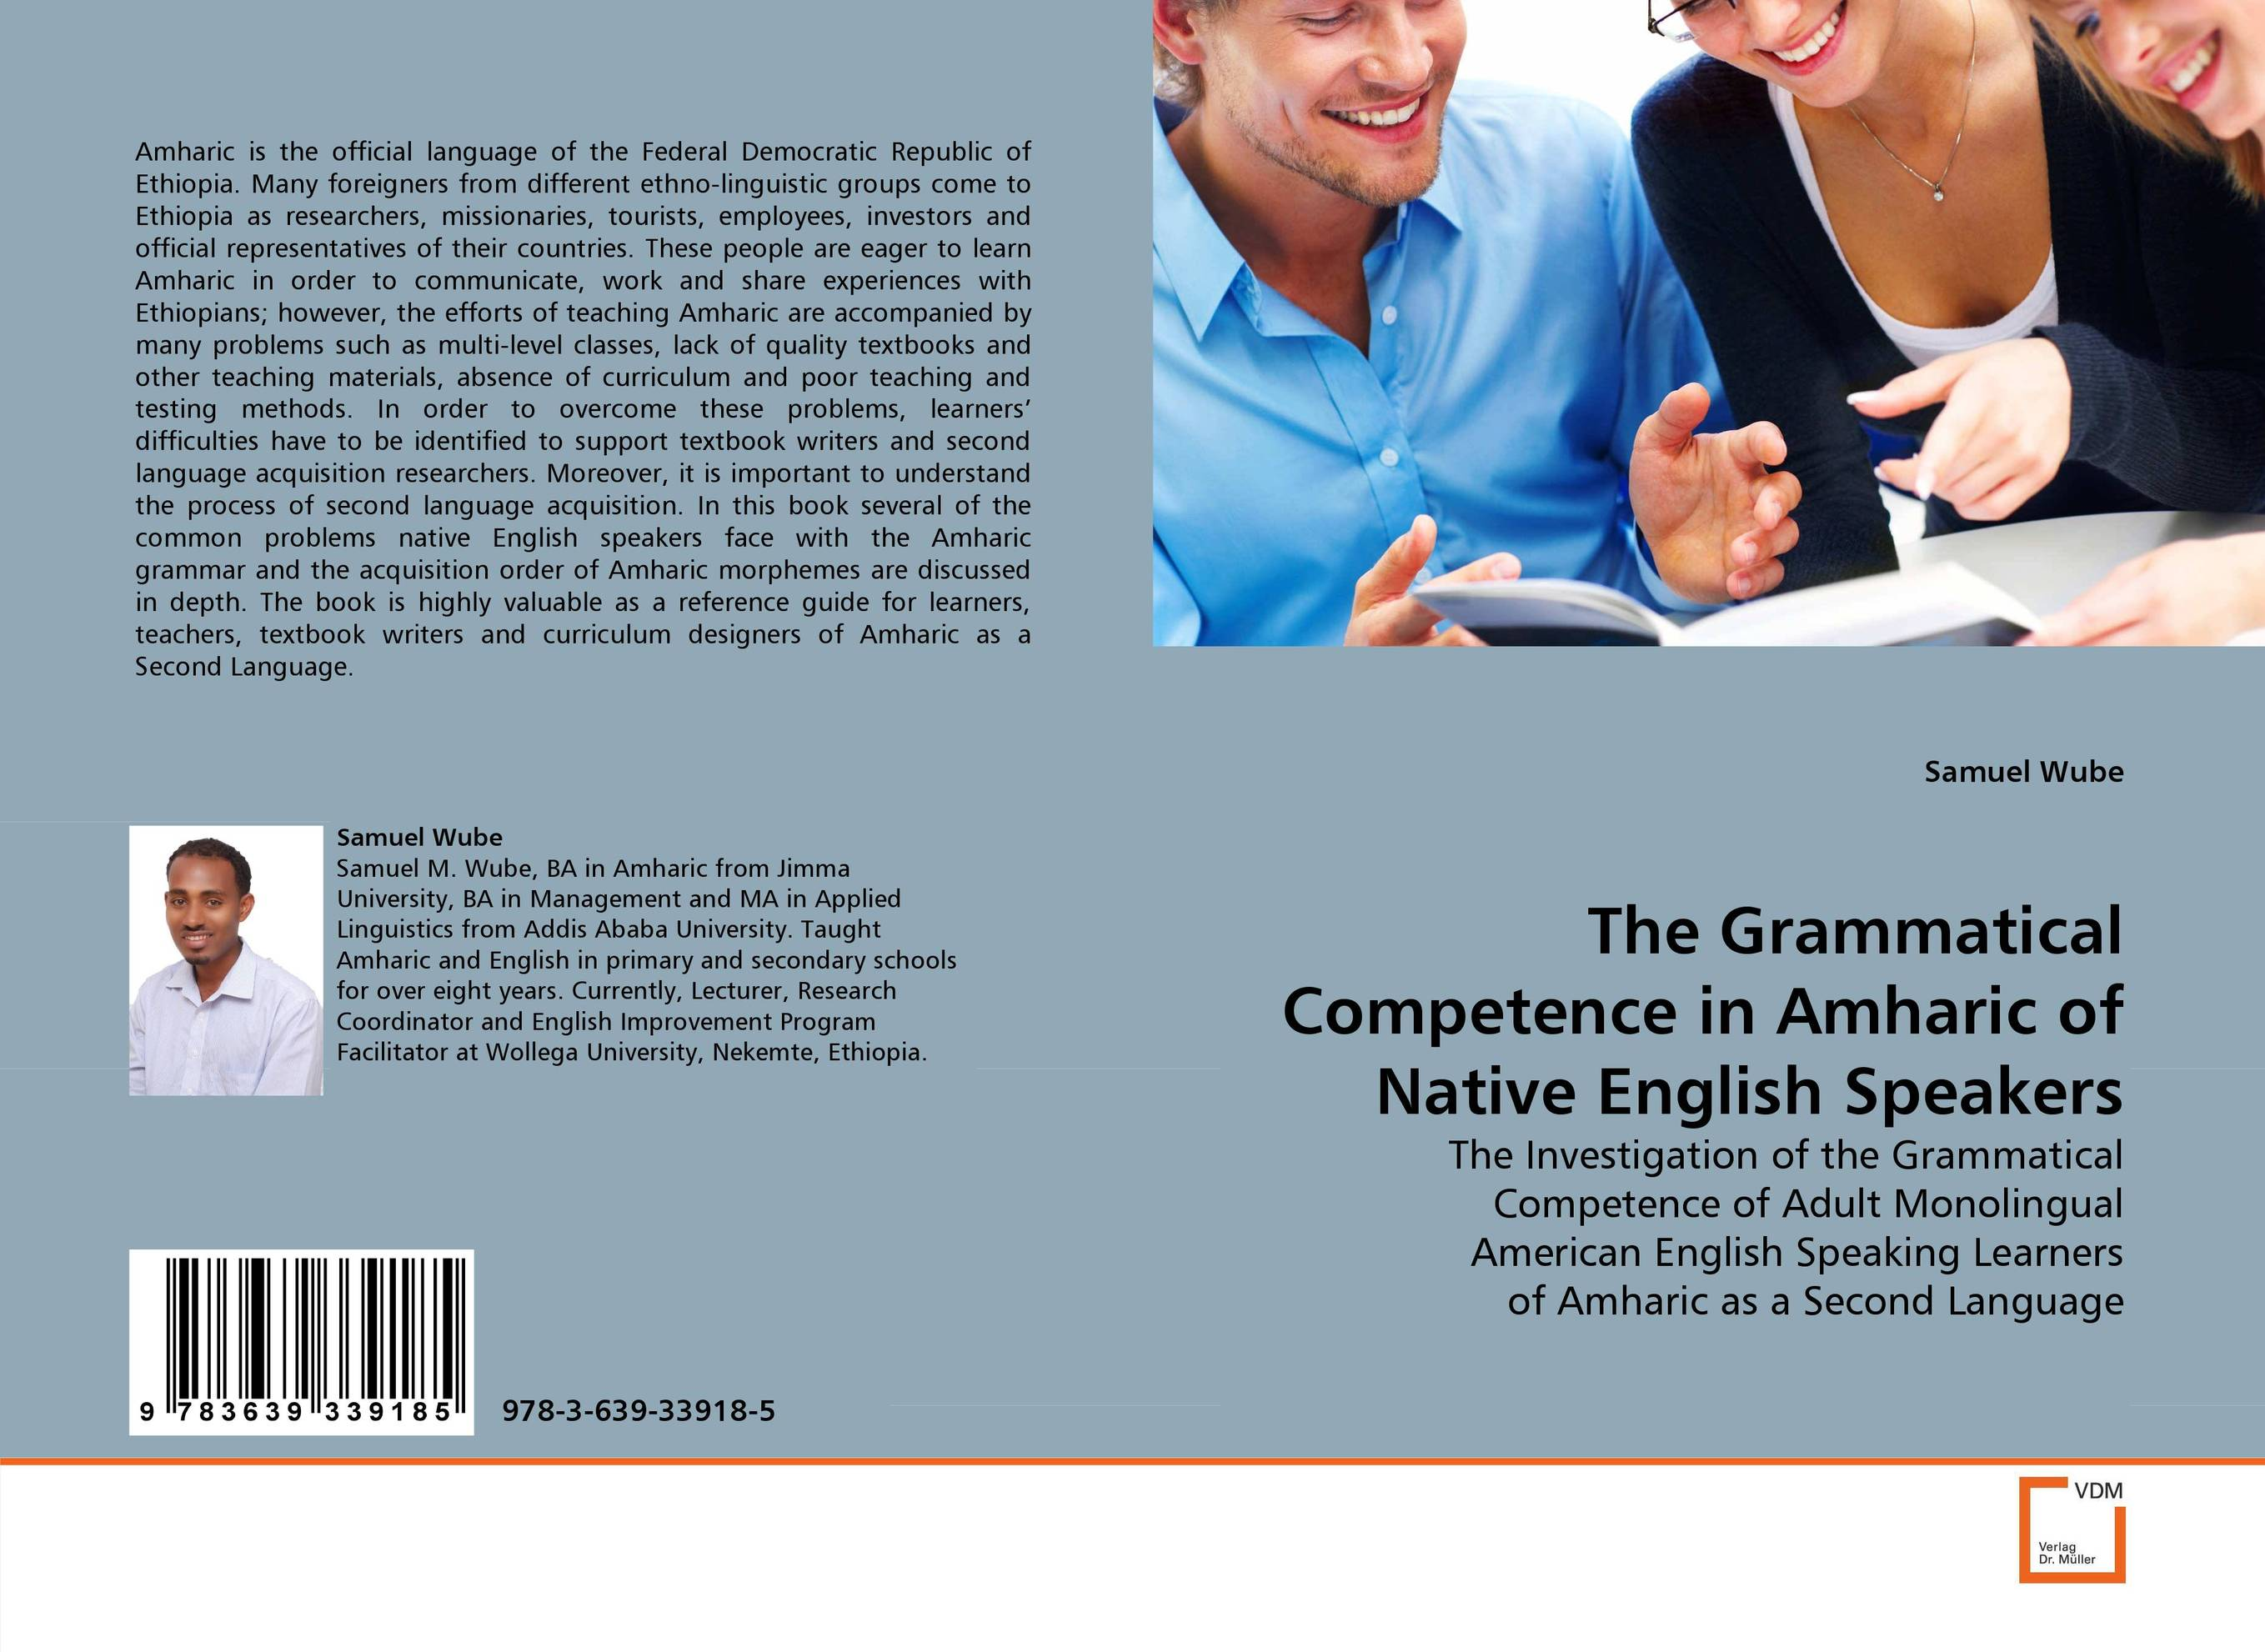 The Grammatical Competence in Amharic of Native English Speakers tools of sustainable cultural heritage management in aksum ethiopia